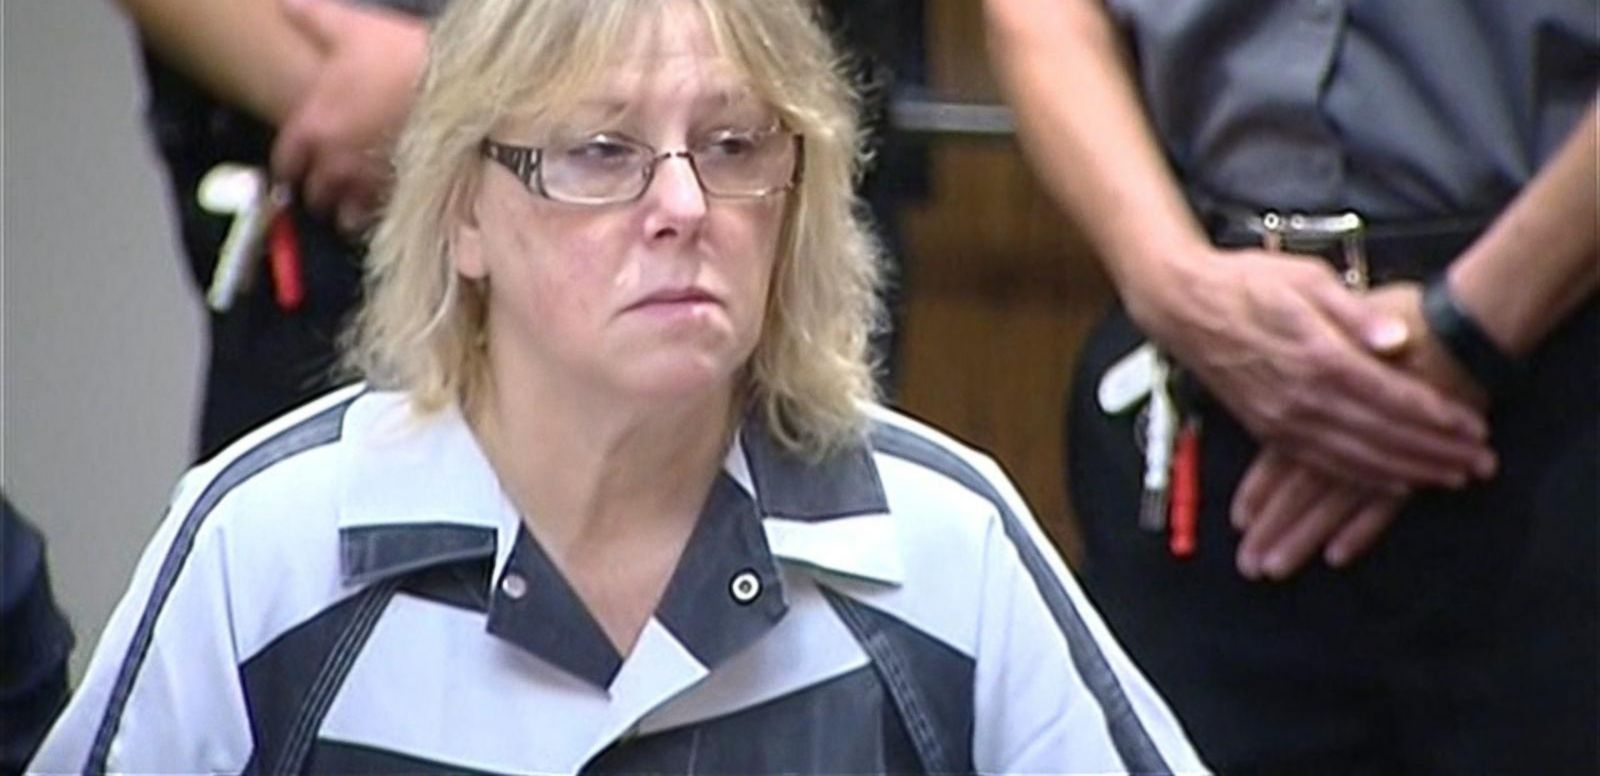 VIDEO: Reaction to Joyce Mitchell's Guilty Plea Emerges